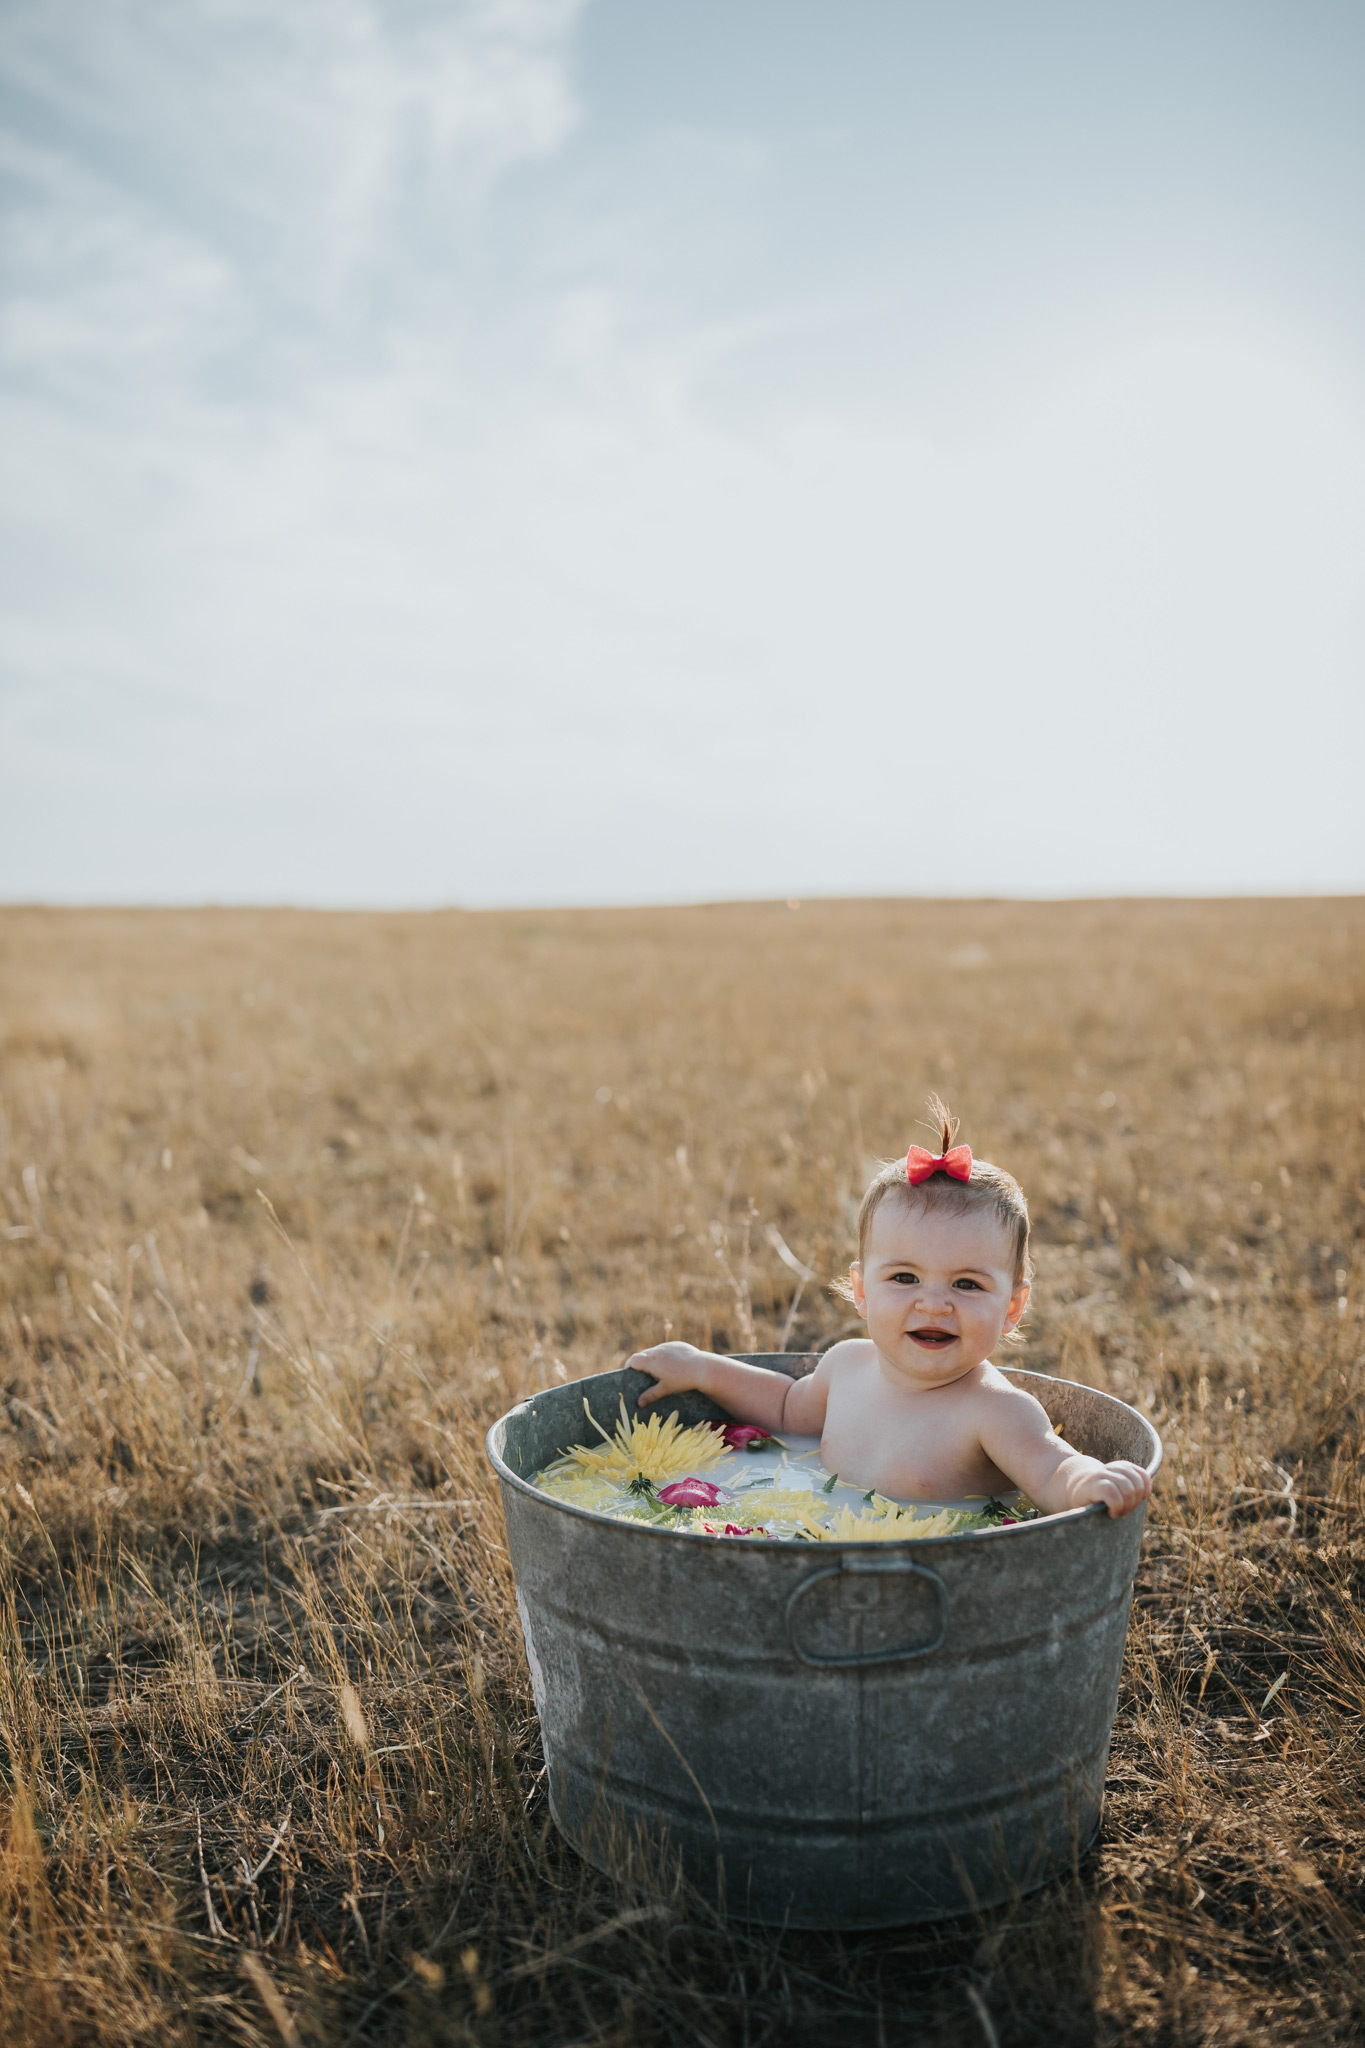 baby relaxing in round metal tub milk bath with flowers